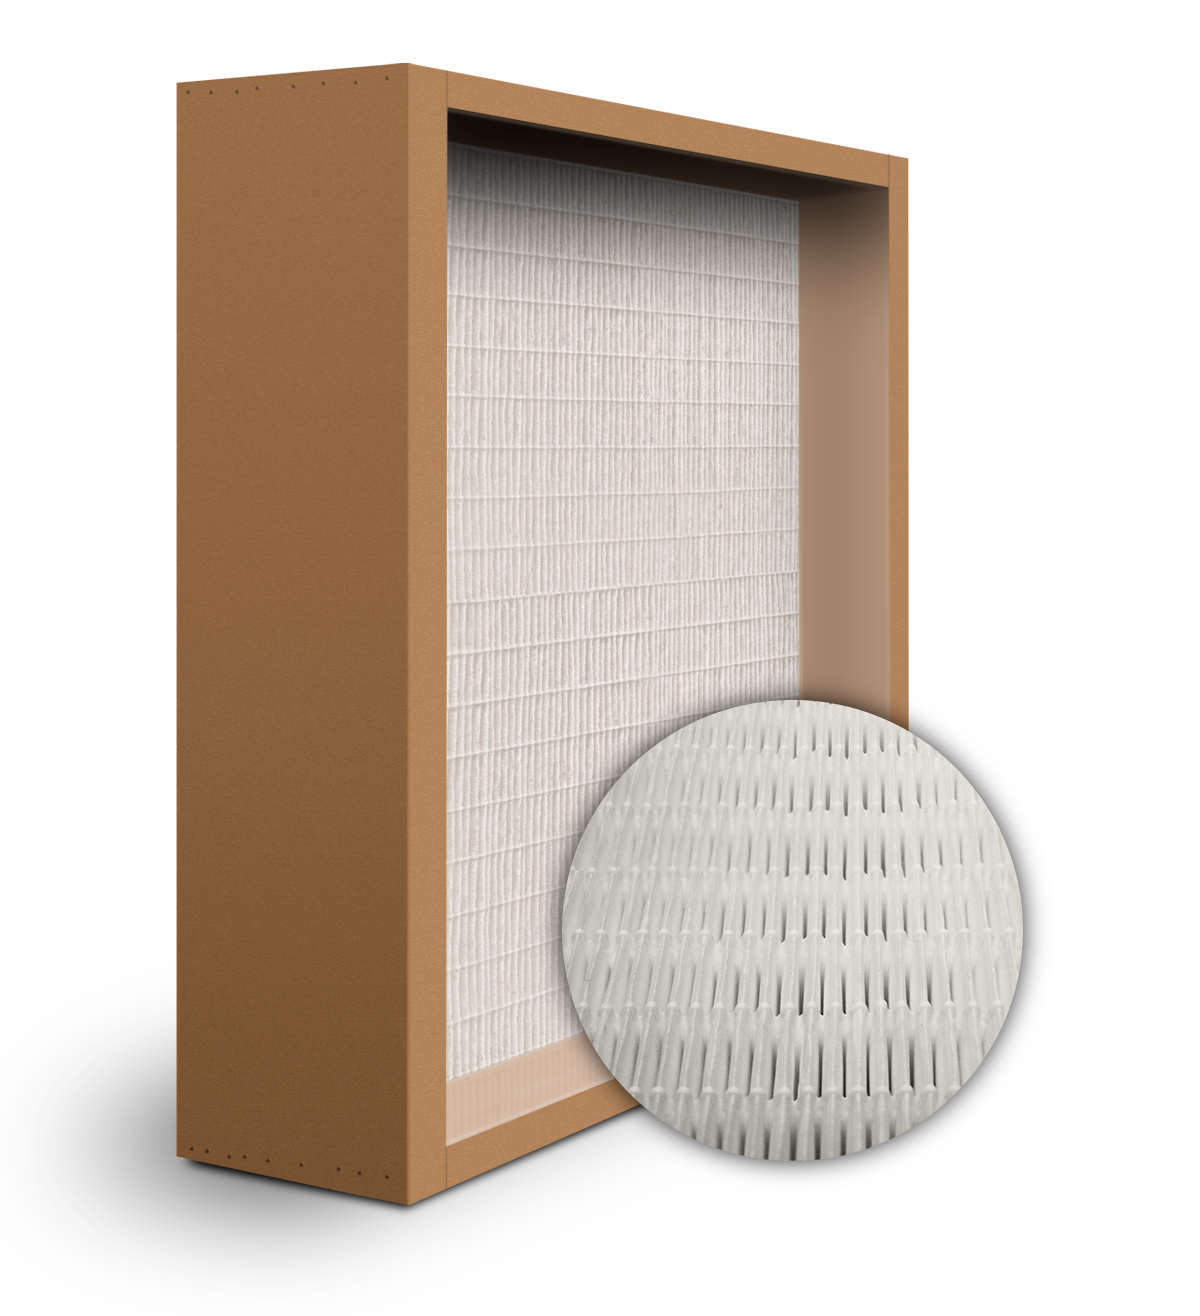 SuperFlo Max ASHRAE 65% (MERV 11/12) Particle Board Frame Mini Pleat Filter 24x24x6